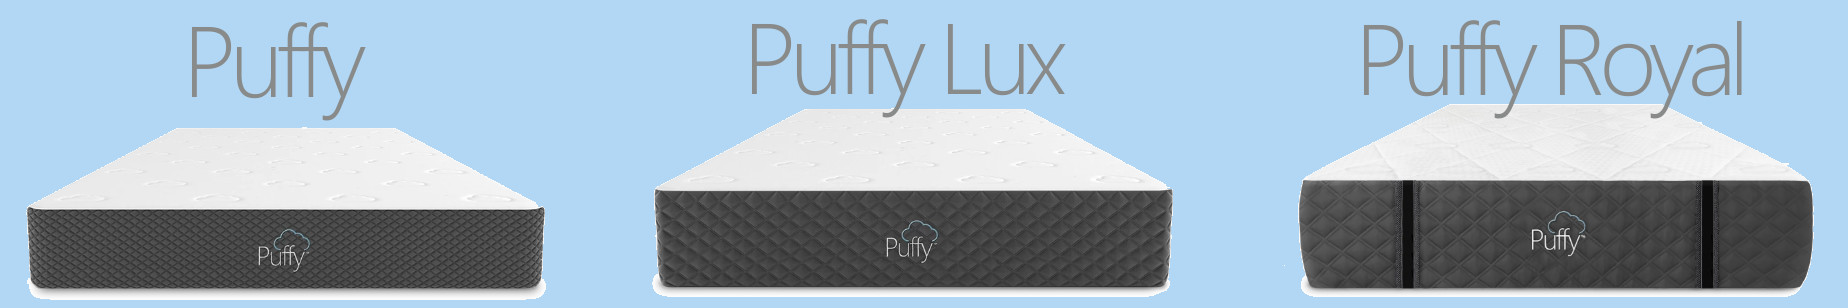 puffy, puffy lux and puffy royal